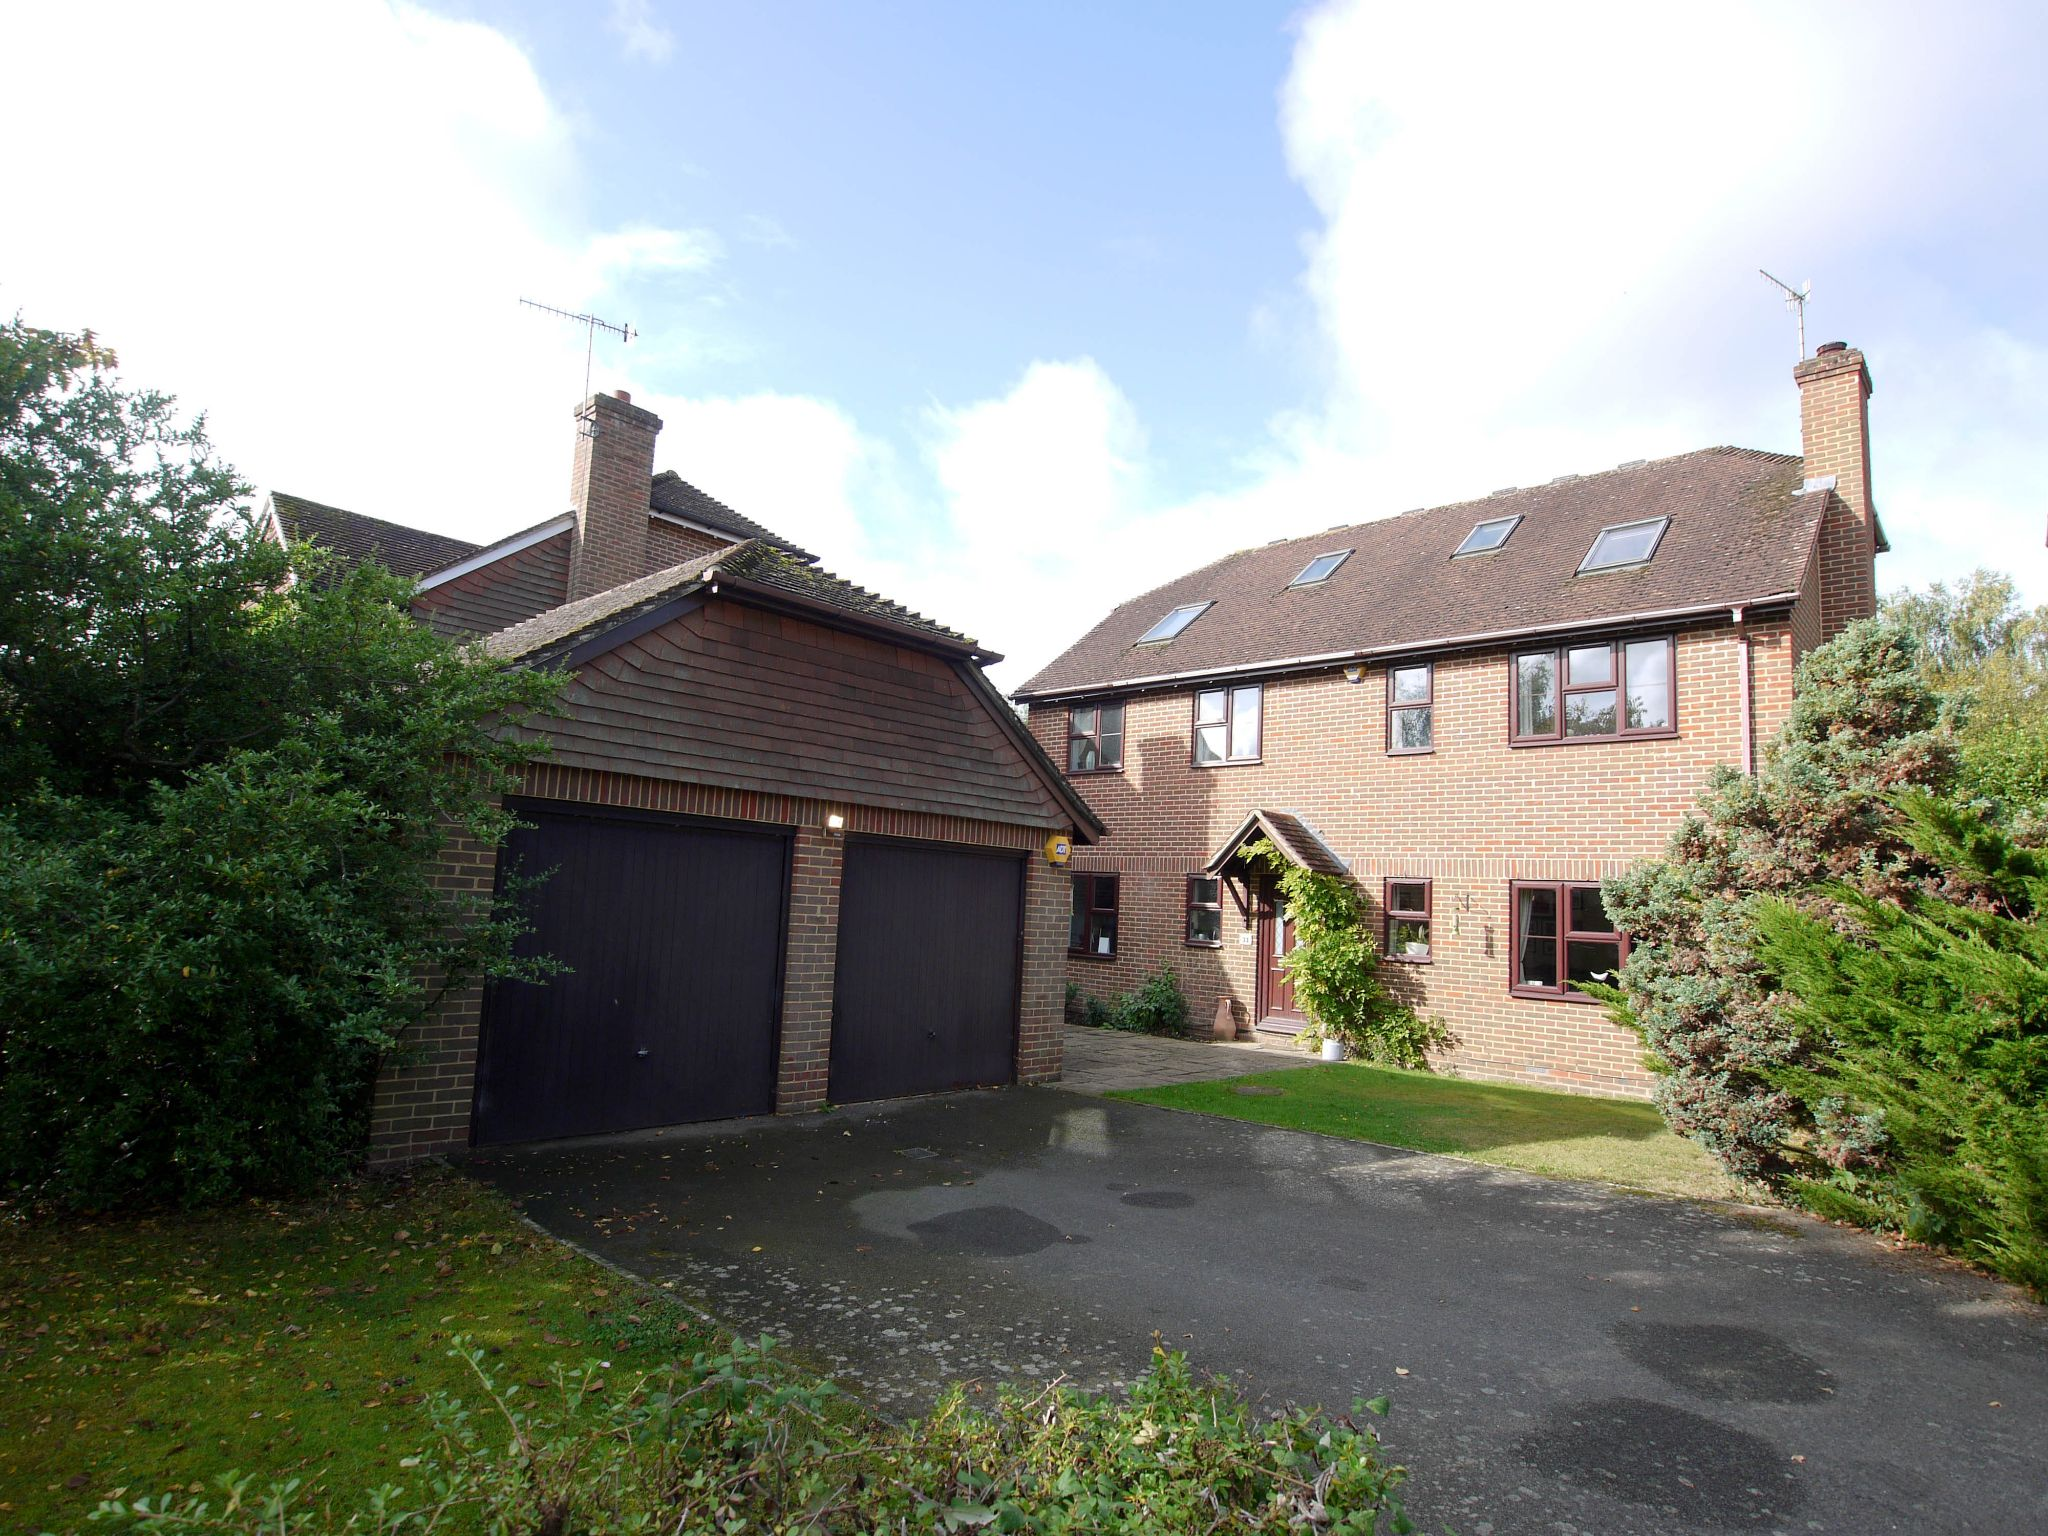 6 bedroom detached house For Sale in Near Tonbridge - Photograph 1